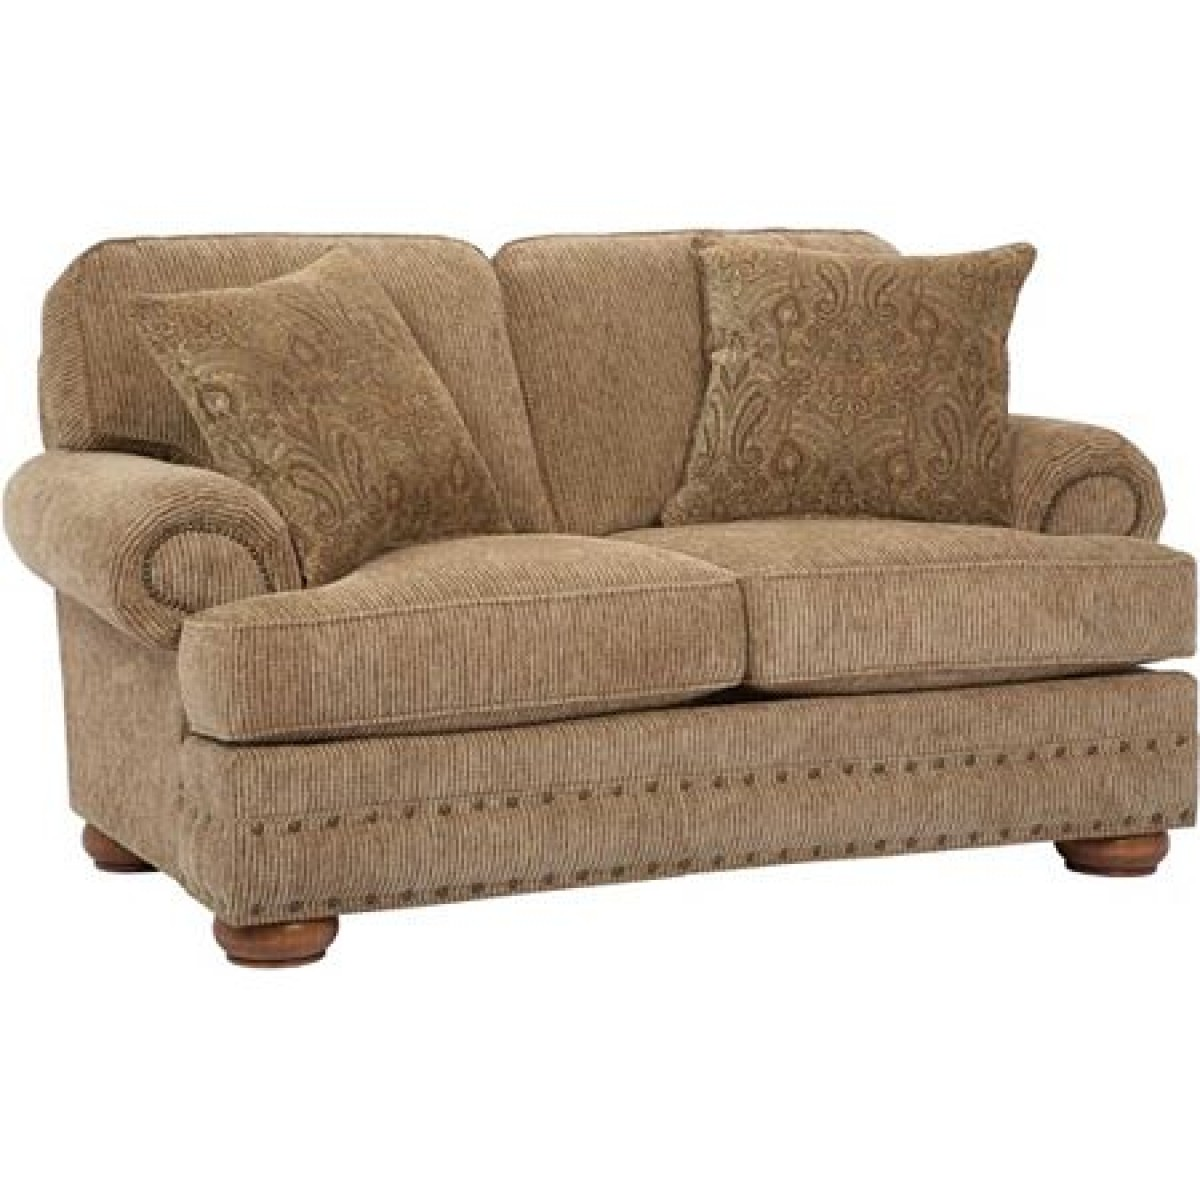 Give yourself the best rest and relaxation soft Best loveseats